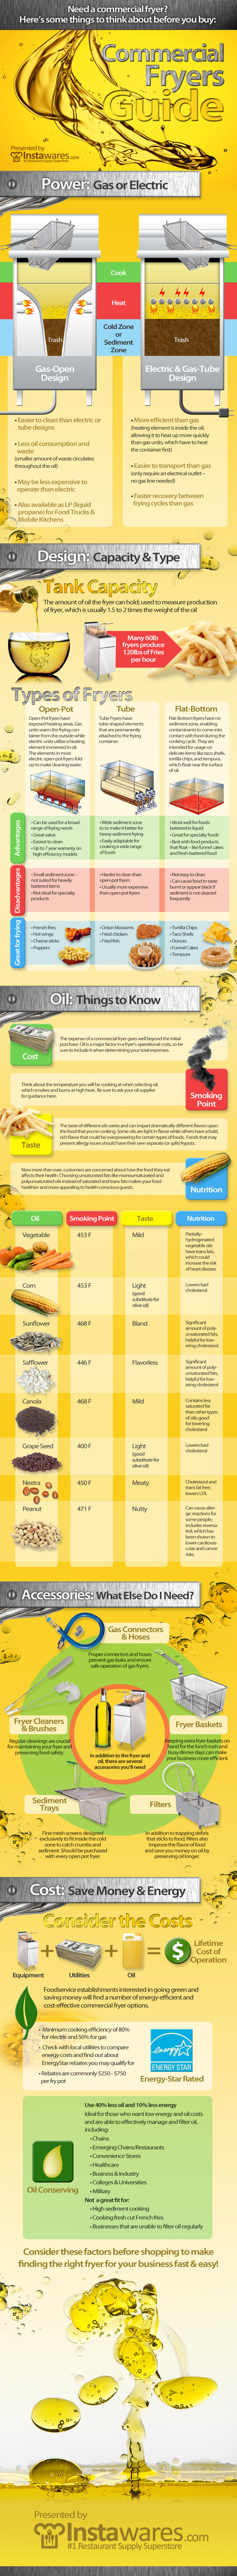 How to Buy a Commercial Fryer Infographic